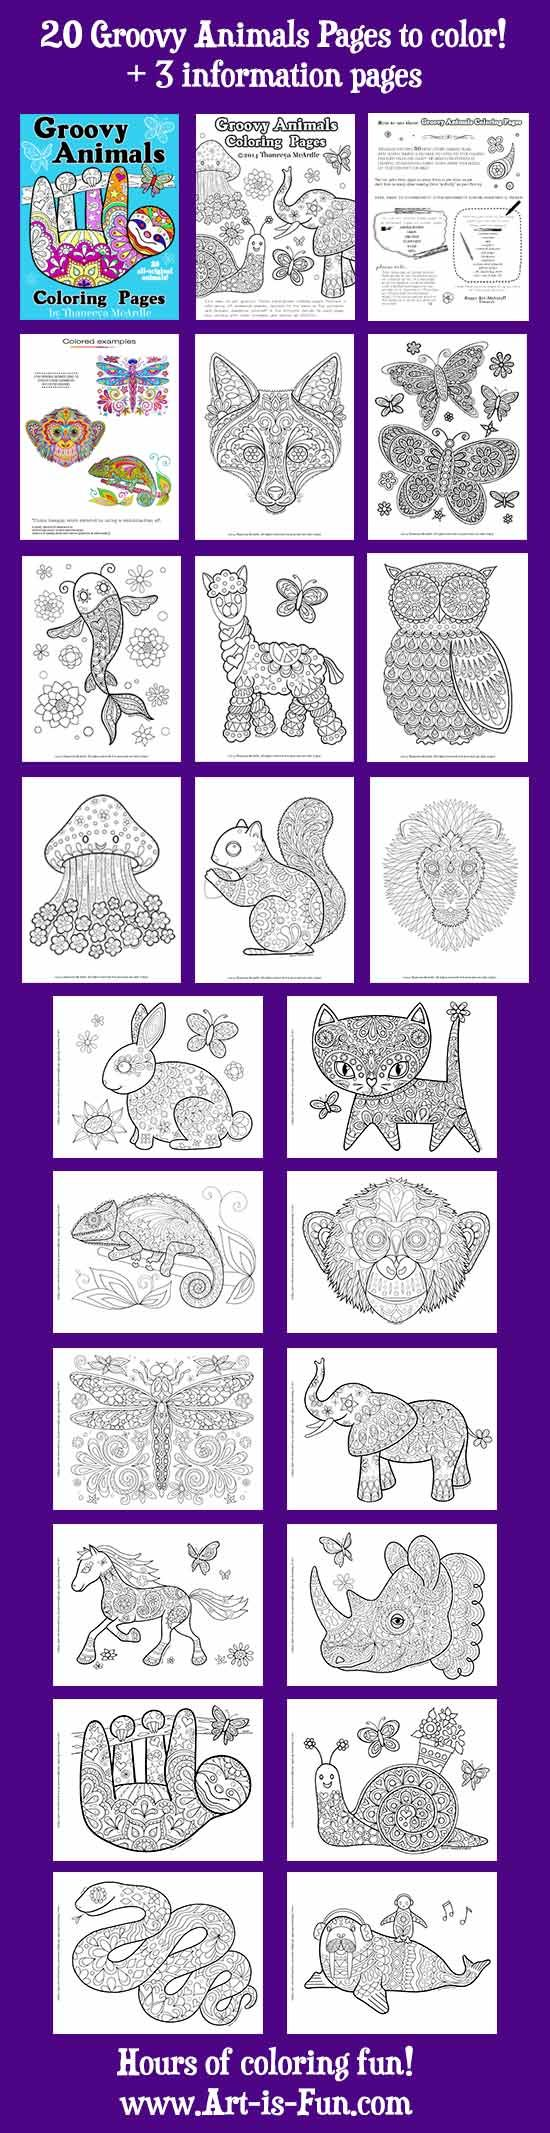 Printable Groovy Animals Coloring Pages